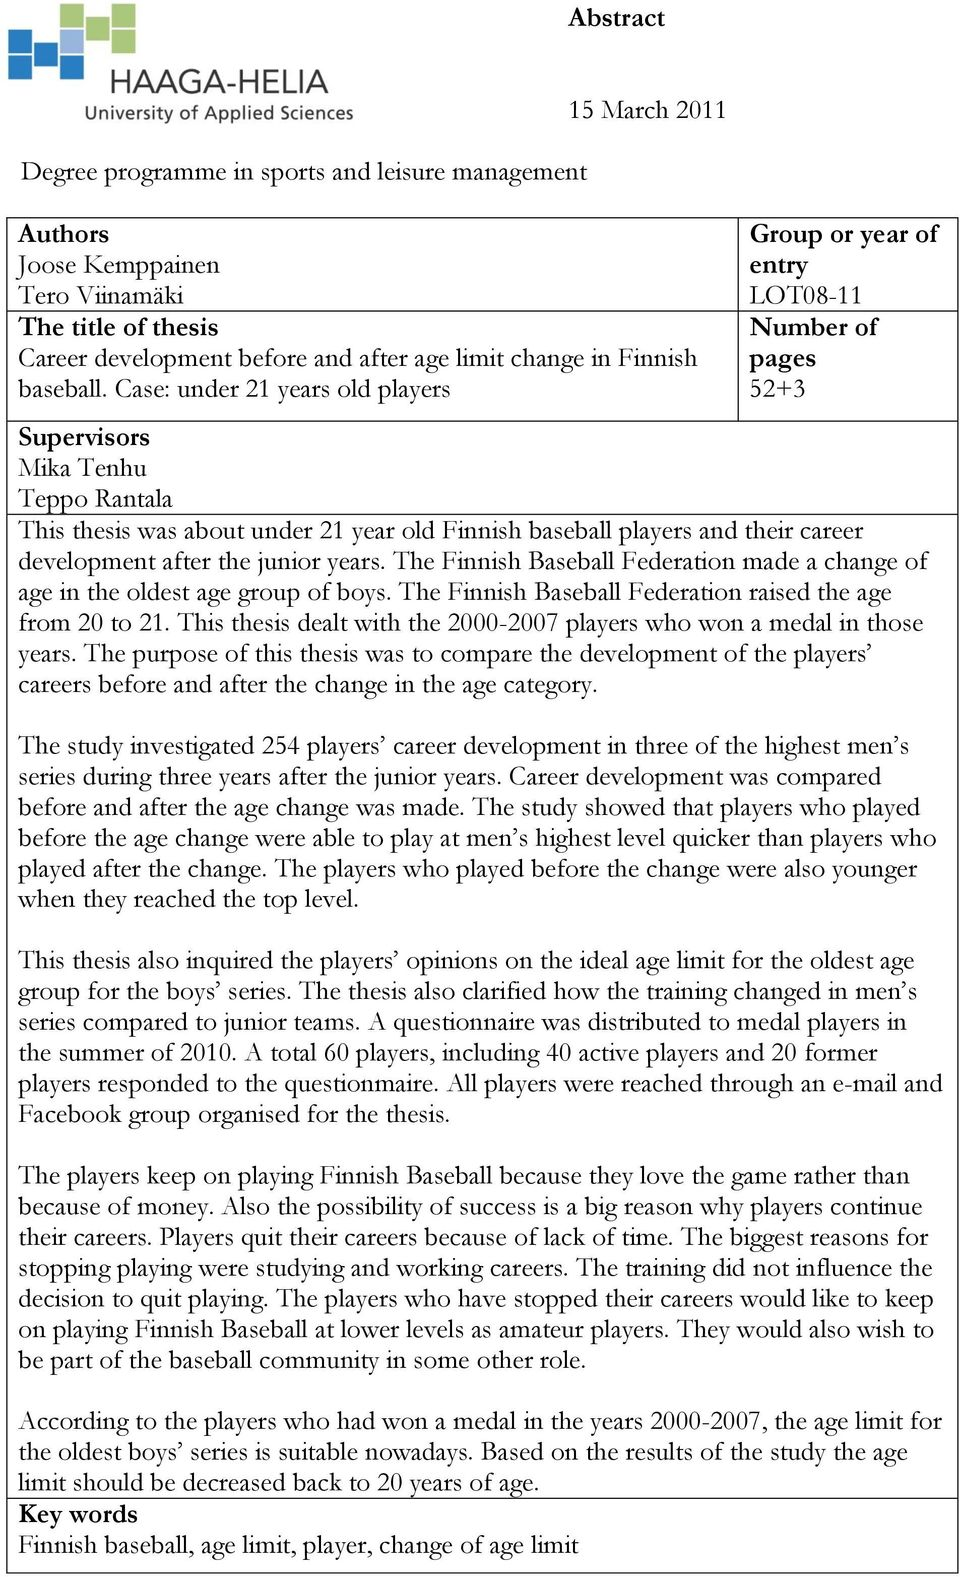 Case: under 21 years old players Group or year of entry LOT08-11 Number of pages 52+3 Supervisors Mika Tenhu Teppo Rantala This thesis was about under 21 year old Finnish baseball players and their